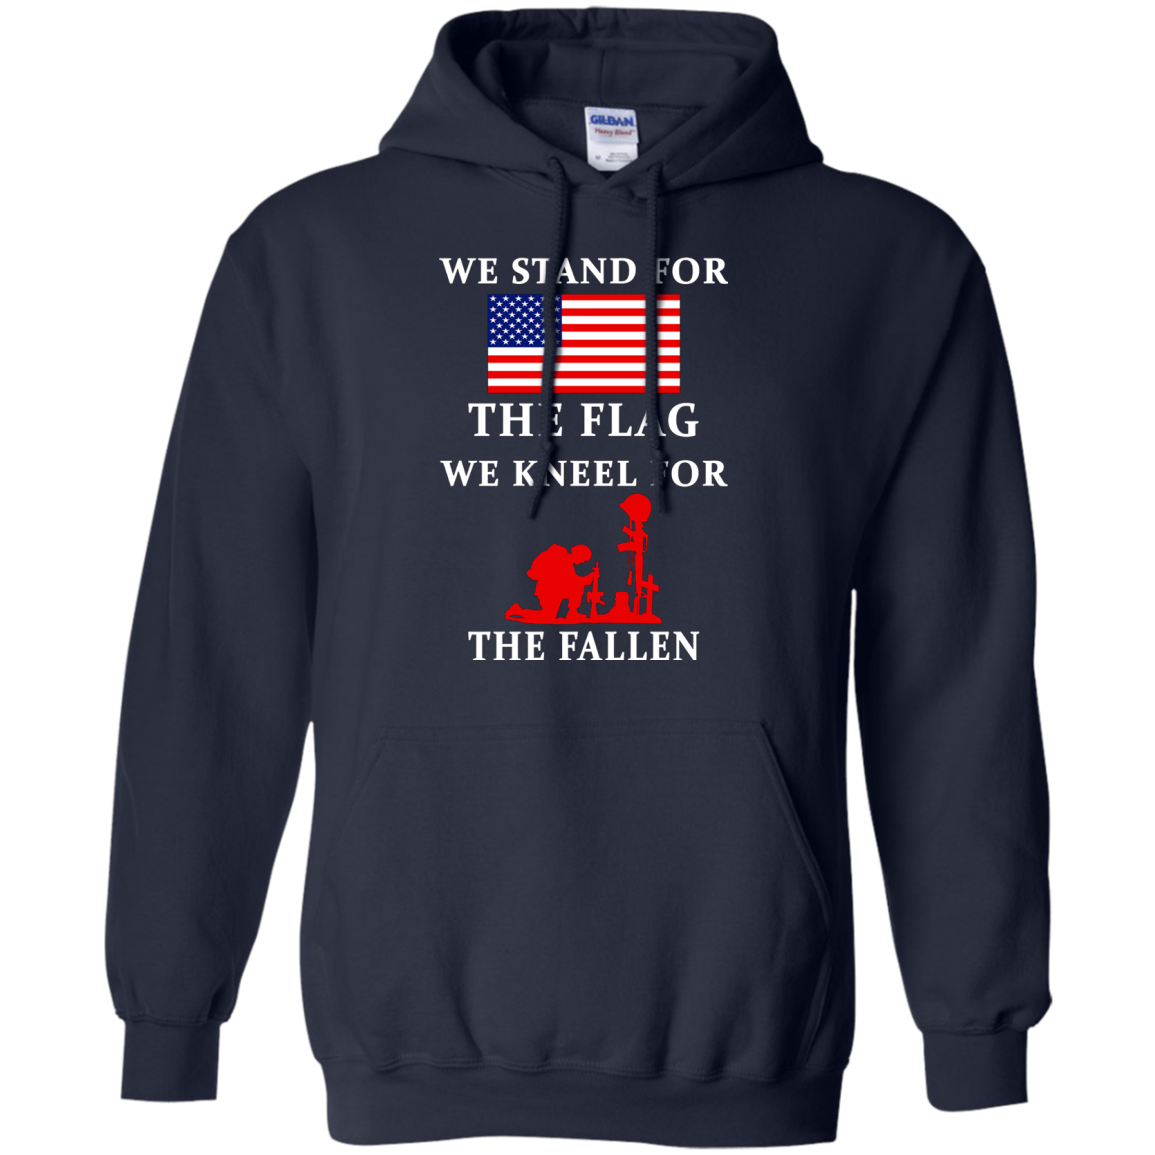 We Stand for The Flag, We Kneel for The Fallen - Apparel V2